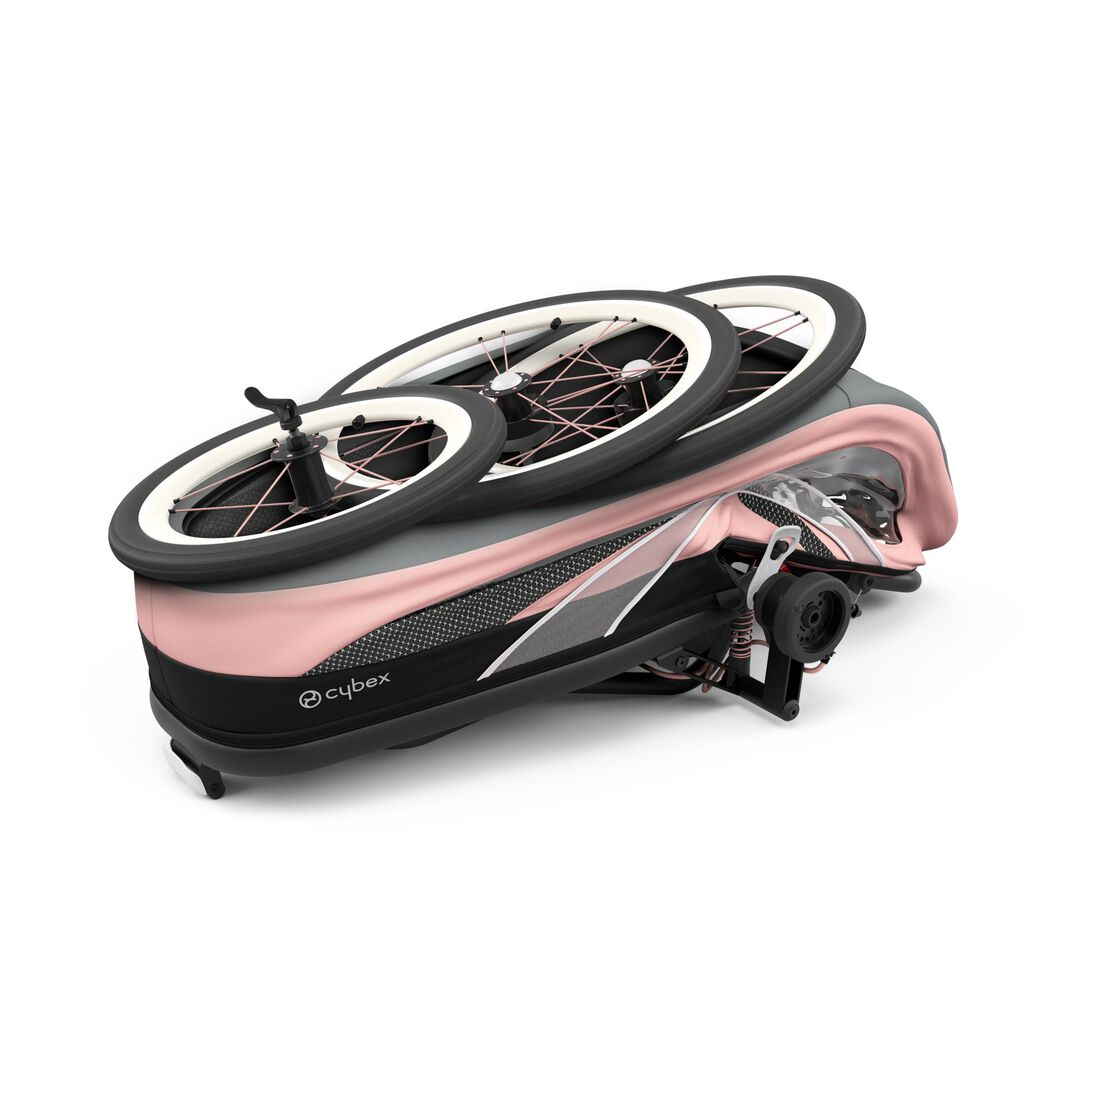 CYBEX Zeno Seat Pack - Silver Pink in Silver Pink large image number 6